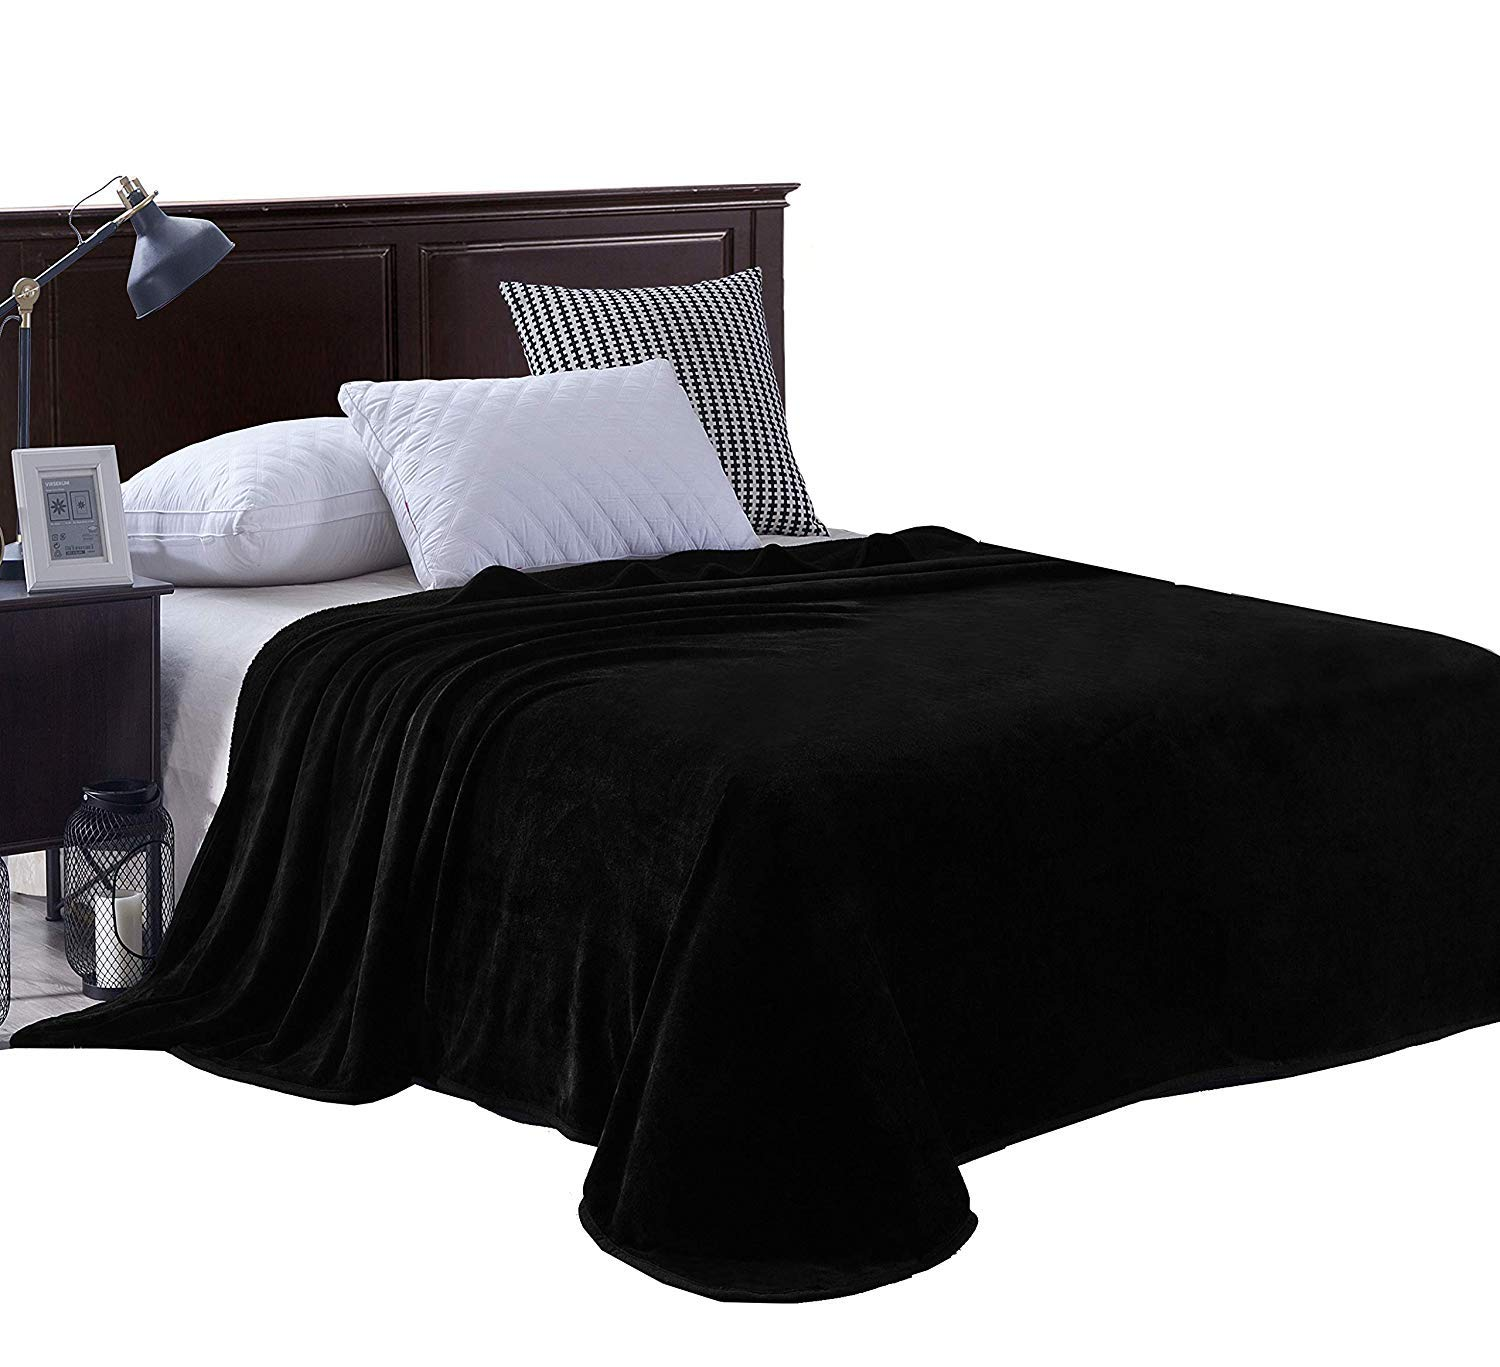 Exclusivo Mezcla Luxury King Size Flannel Velvet Plush Solid Bed Blanket as Bedspread/Coverlet/Bed Cover (90'' x 104'', Black) - Soft, Lightweight, Warm and Cozy